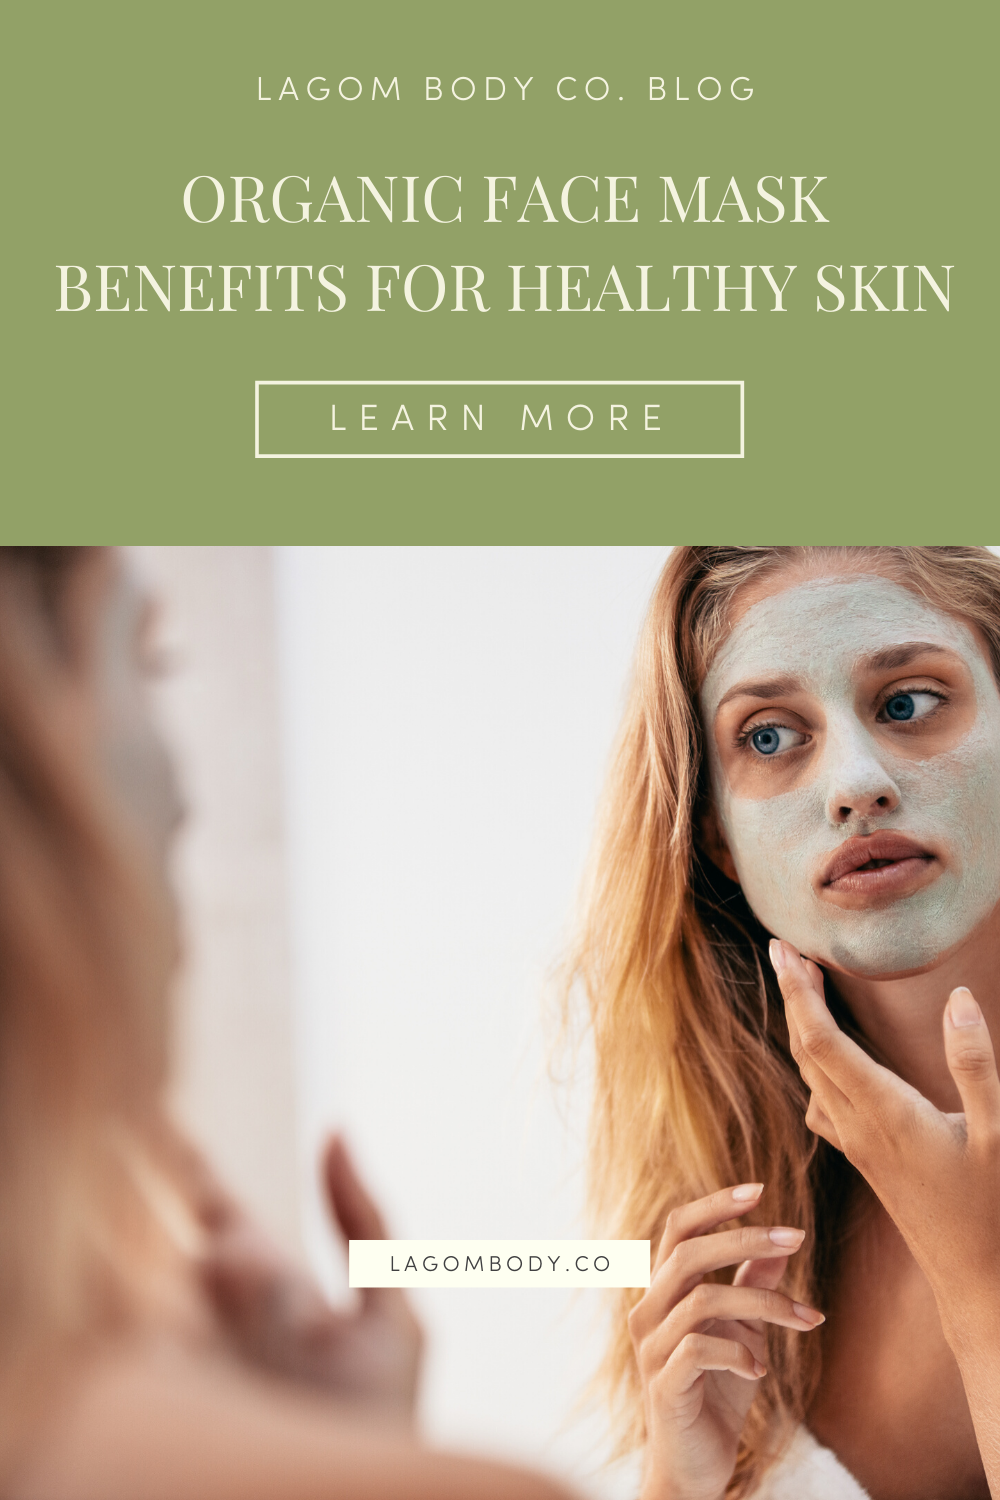 Organic Face Mask Benefits For Healthy Skin by Lagom Body Co. Promo with woman with clay mask applied to face